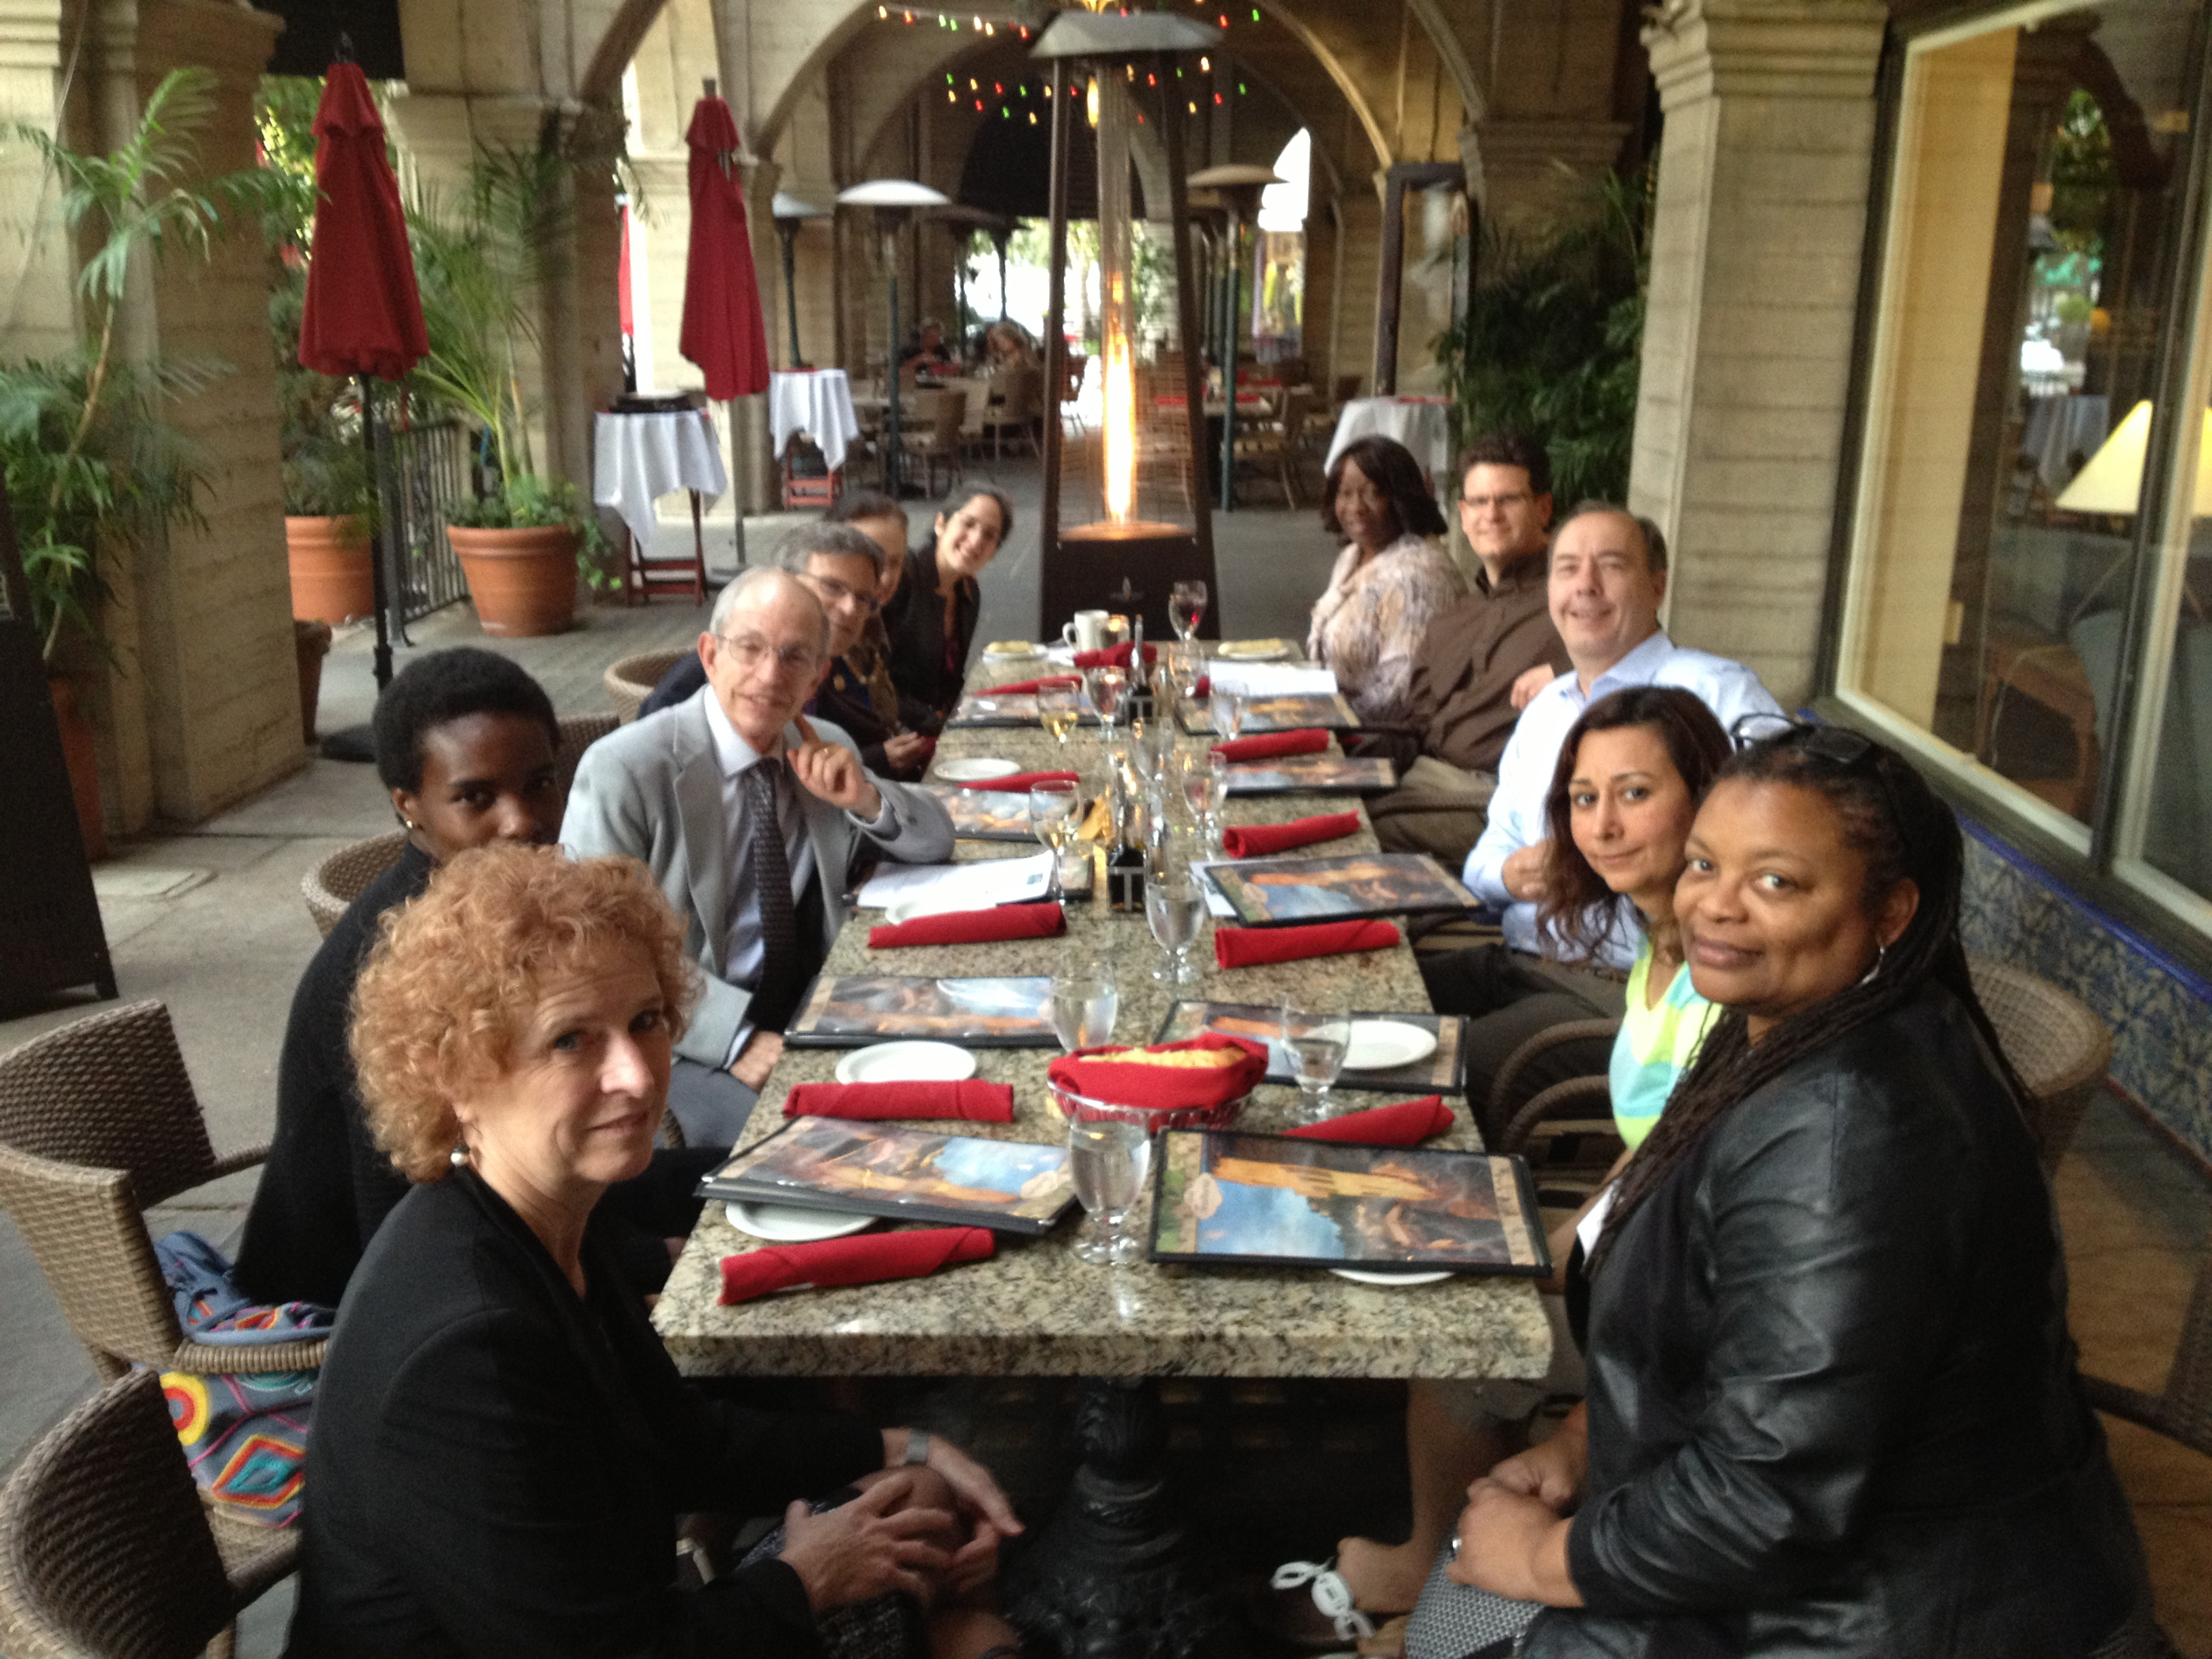 CAPM Meeting at Mission Inn, Riverside, April 17, 2014